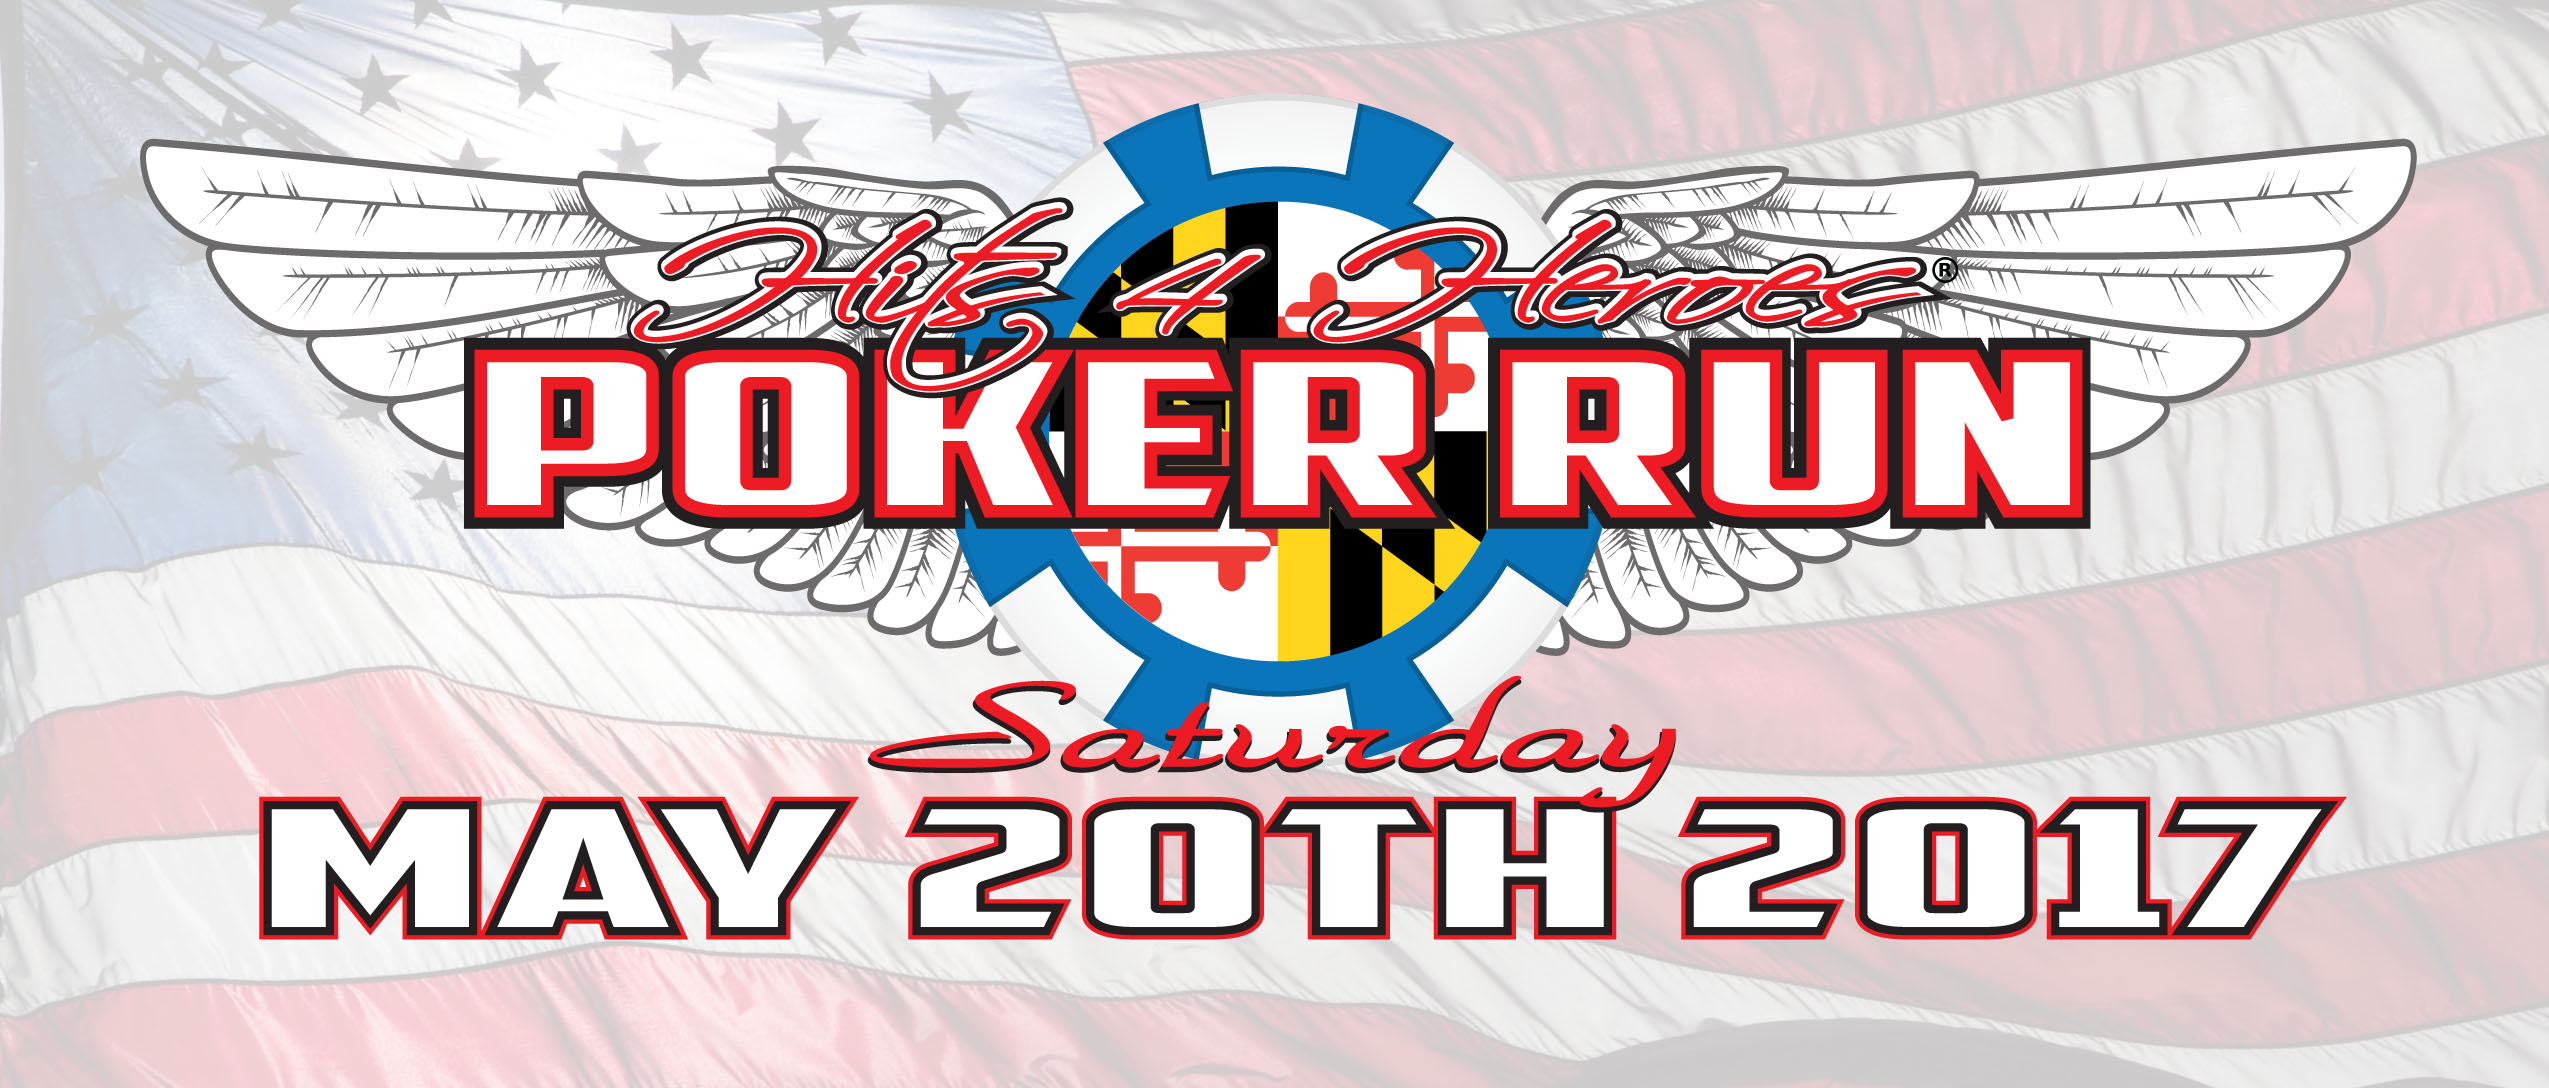 2017 H4H poker run EVENT PIC